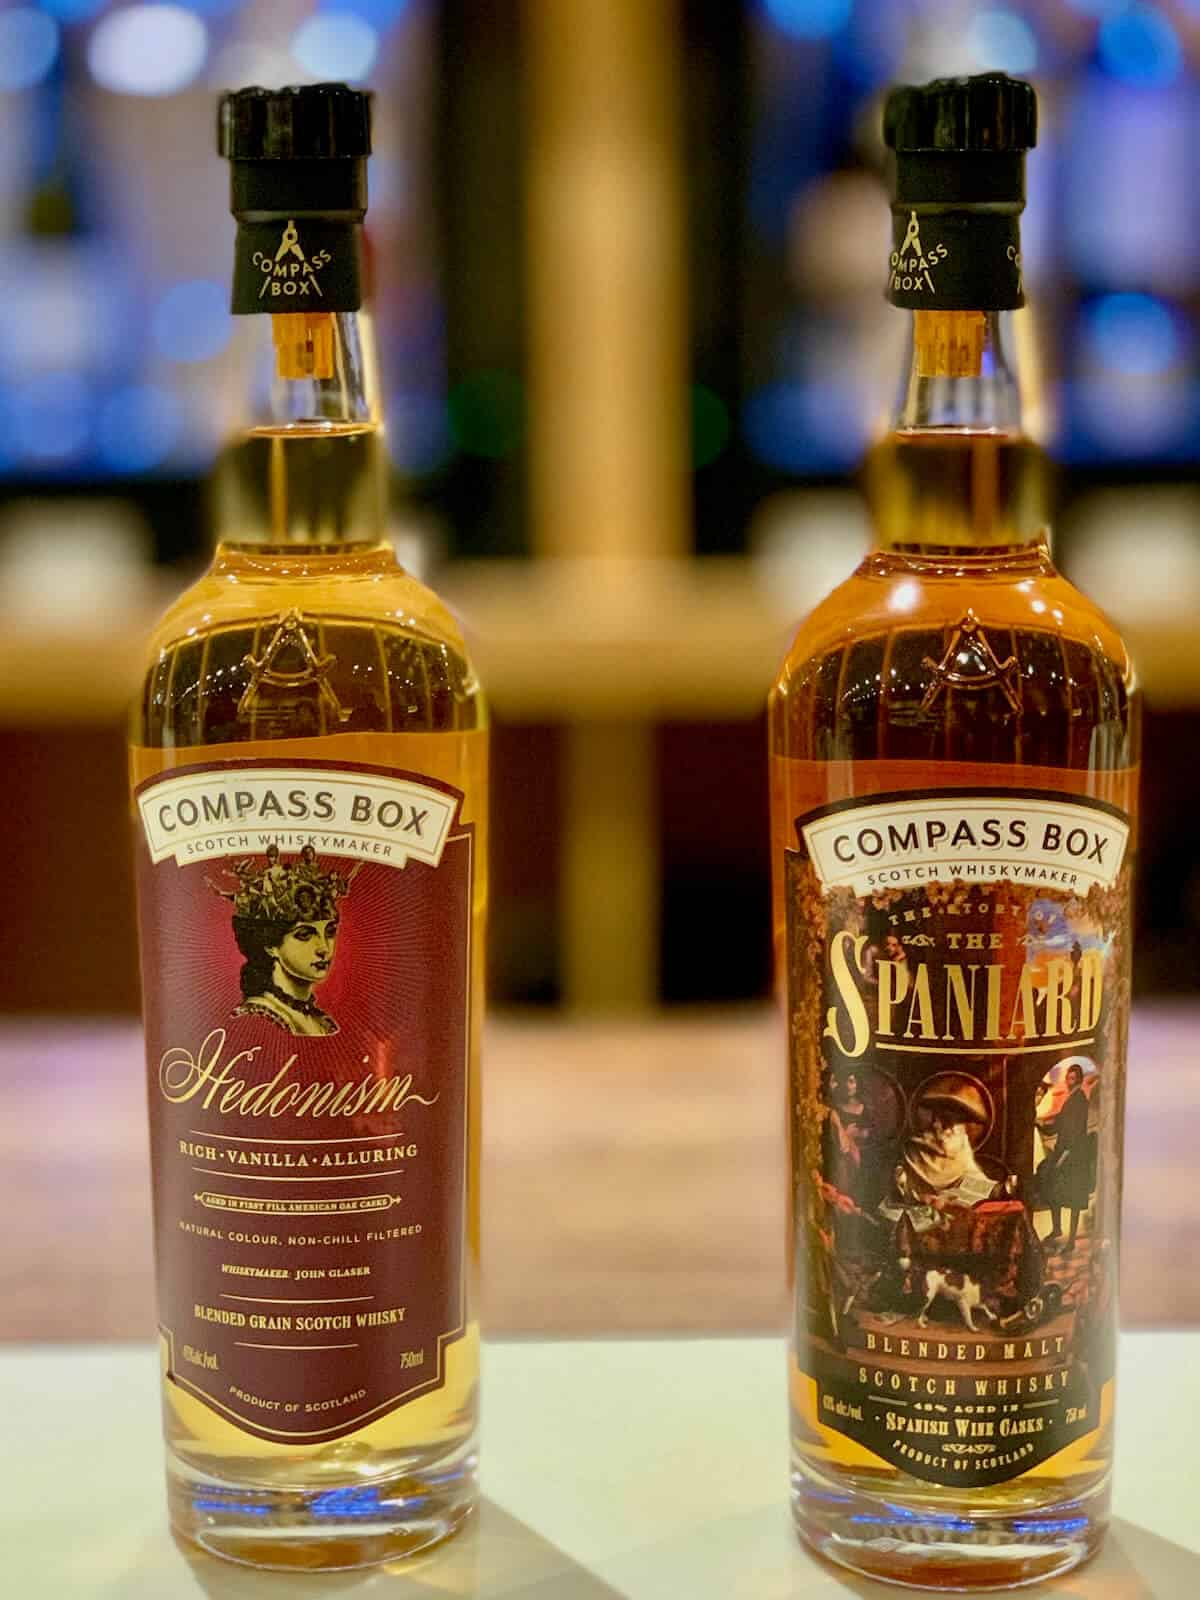 Compass Box Blended Scotch Hedonism and Spaniard in bottles on a counter.